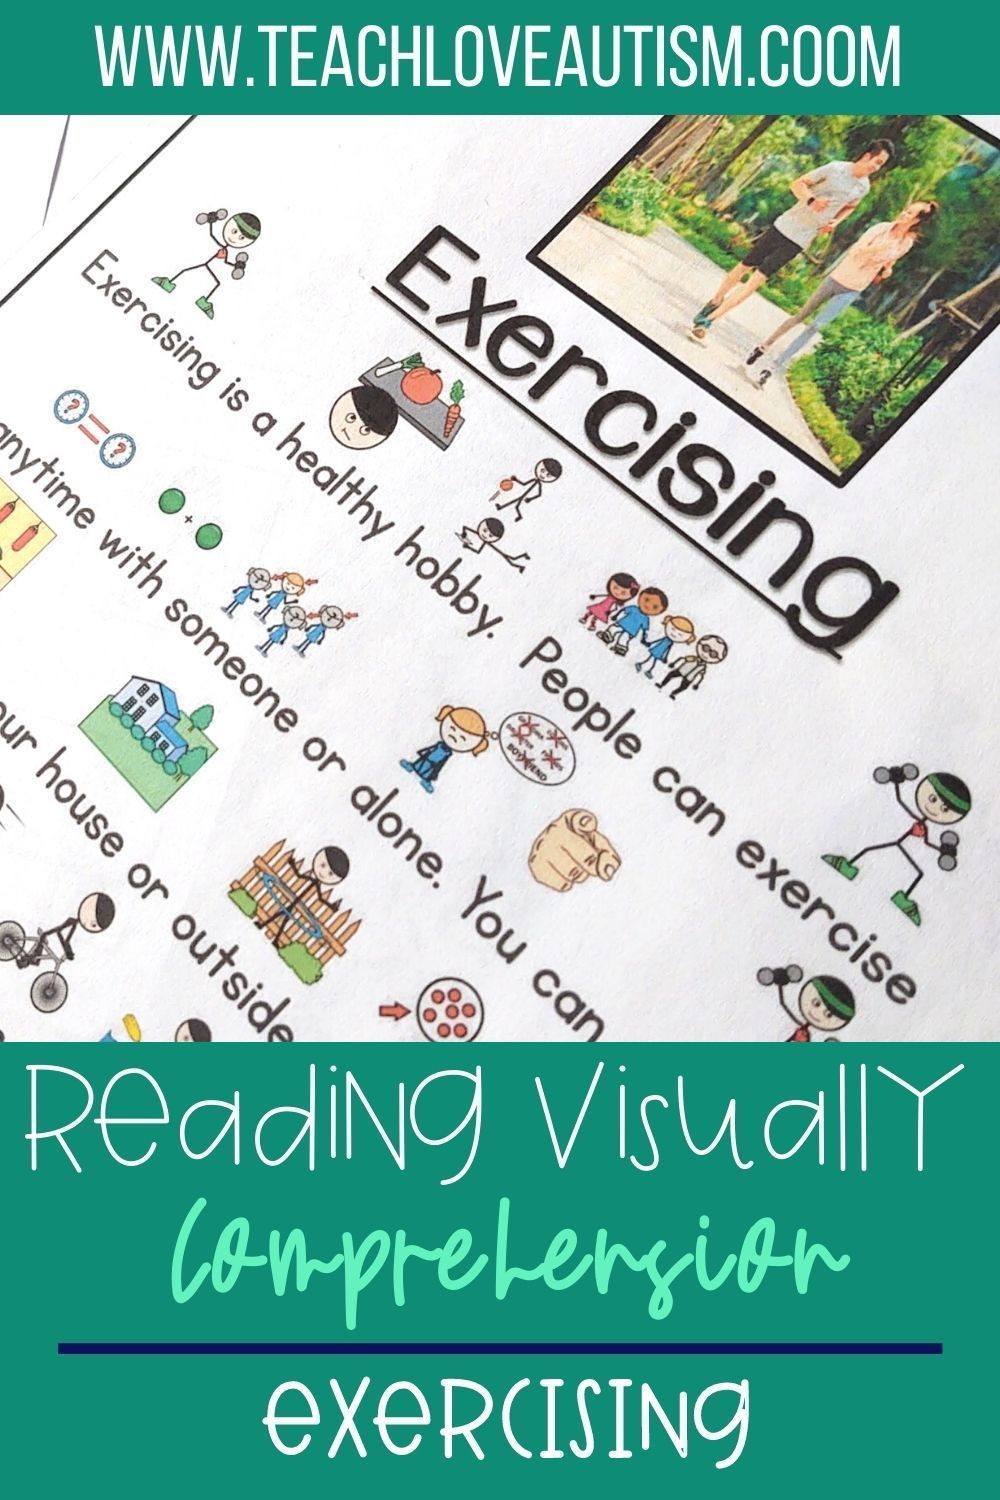 Exercising Reading Visually Comprehension In 2021 Reading Comprehension Activities Special Education Reading Comprehension Activities [ 1500 x 1000 Pixel ]